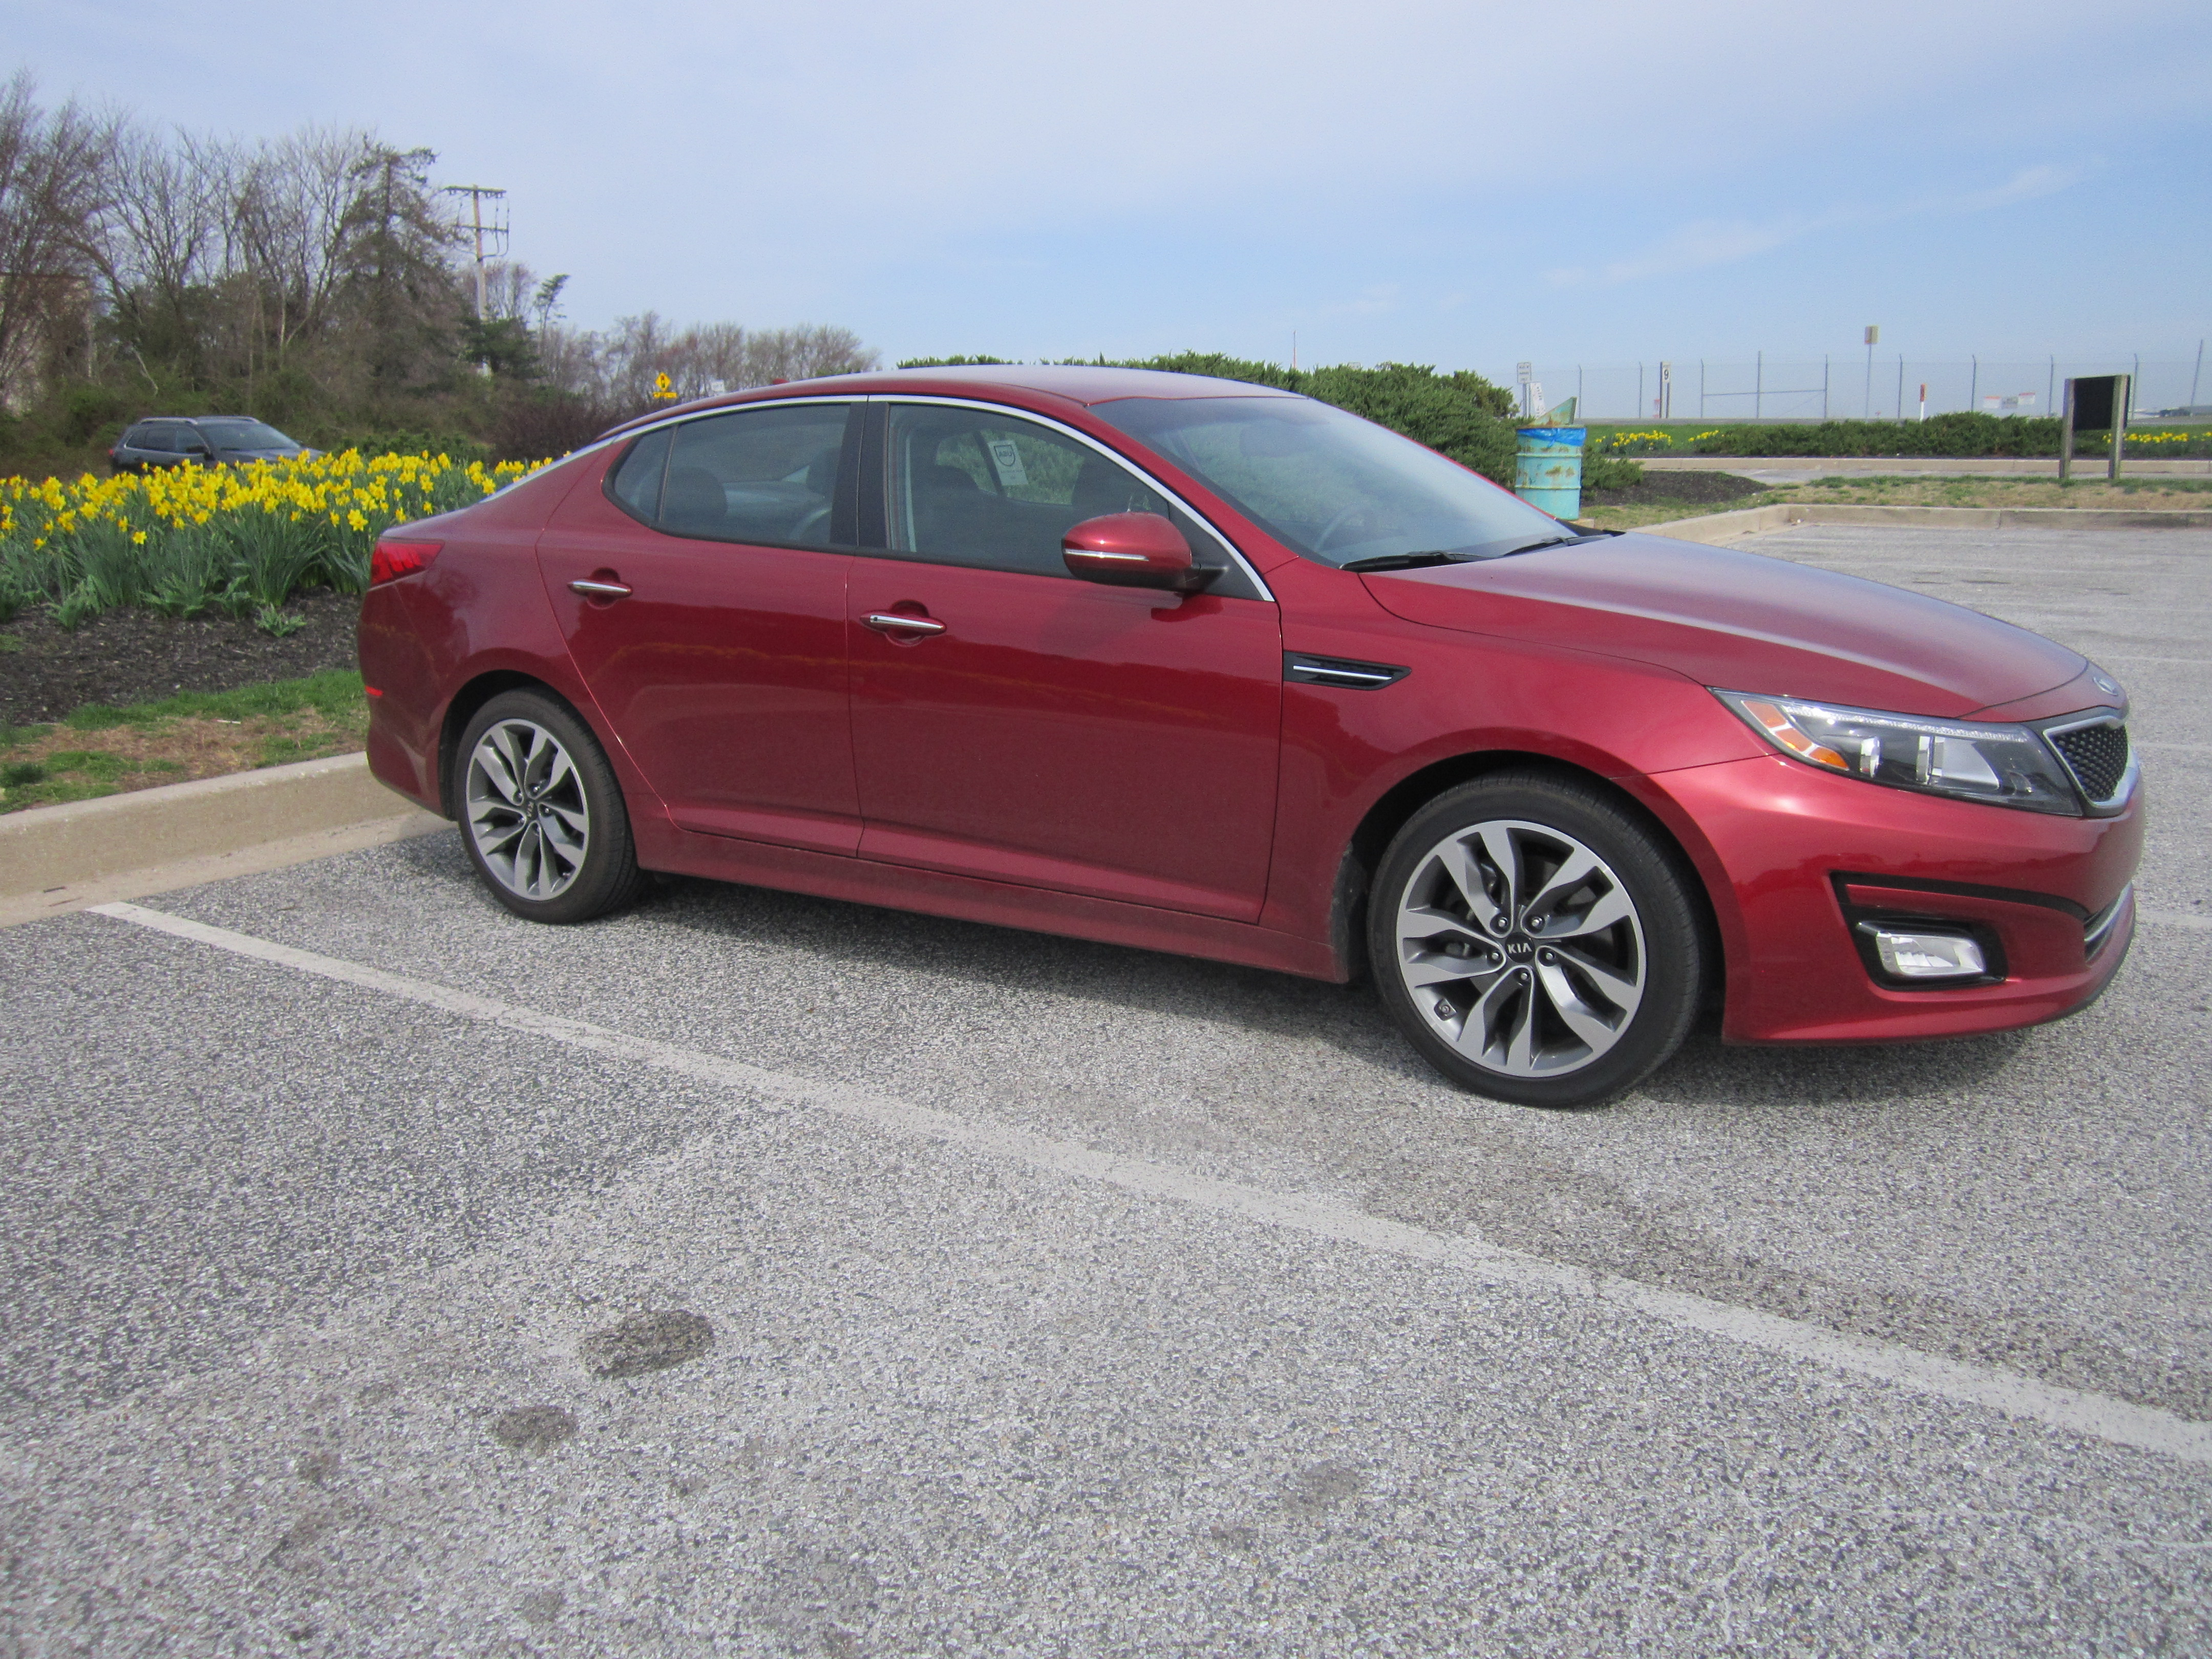 Kia Optima SX offers a dose of luxury for a decent price